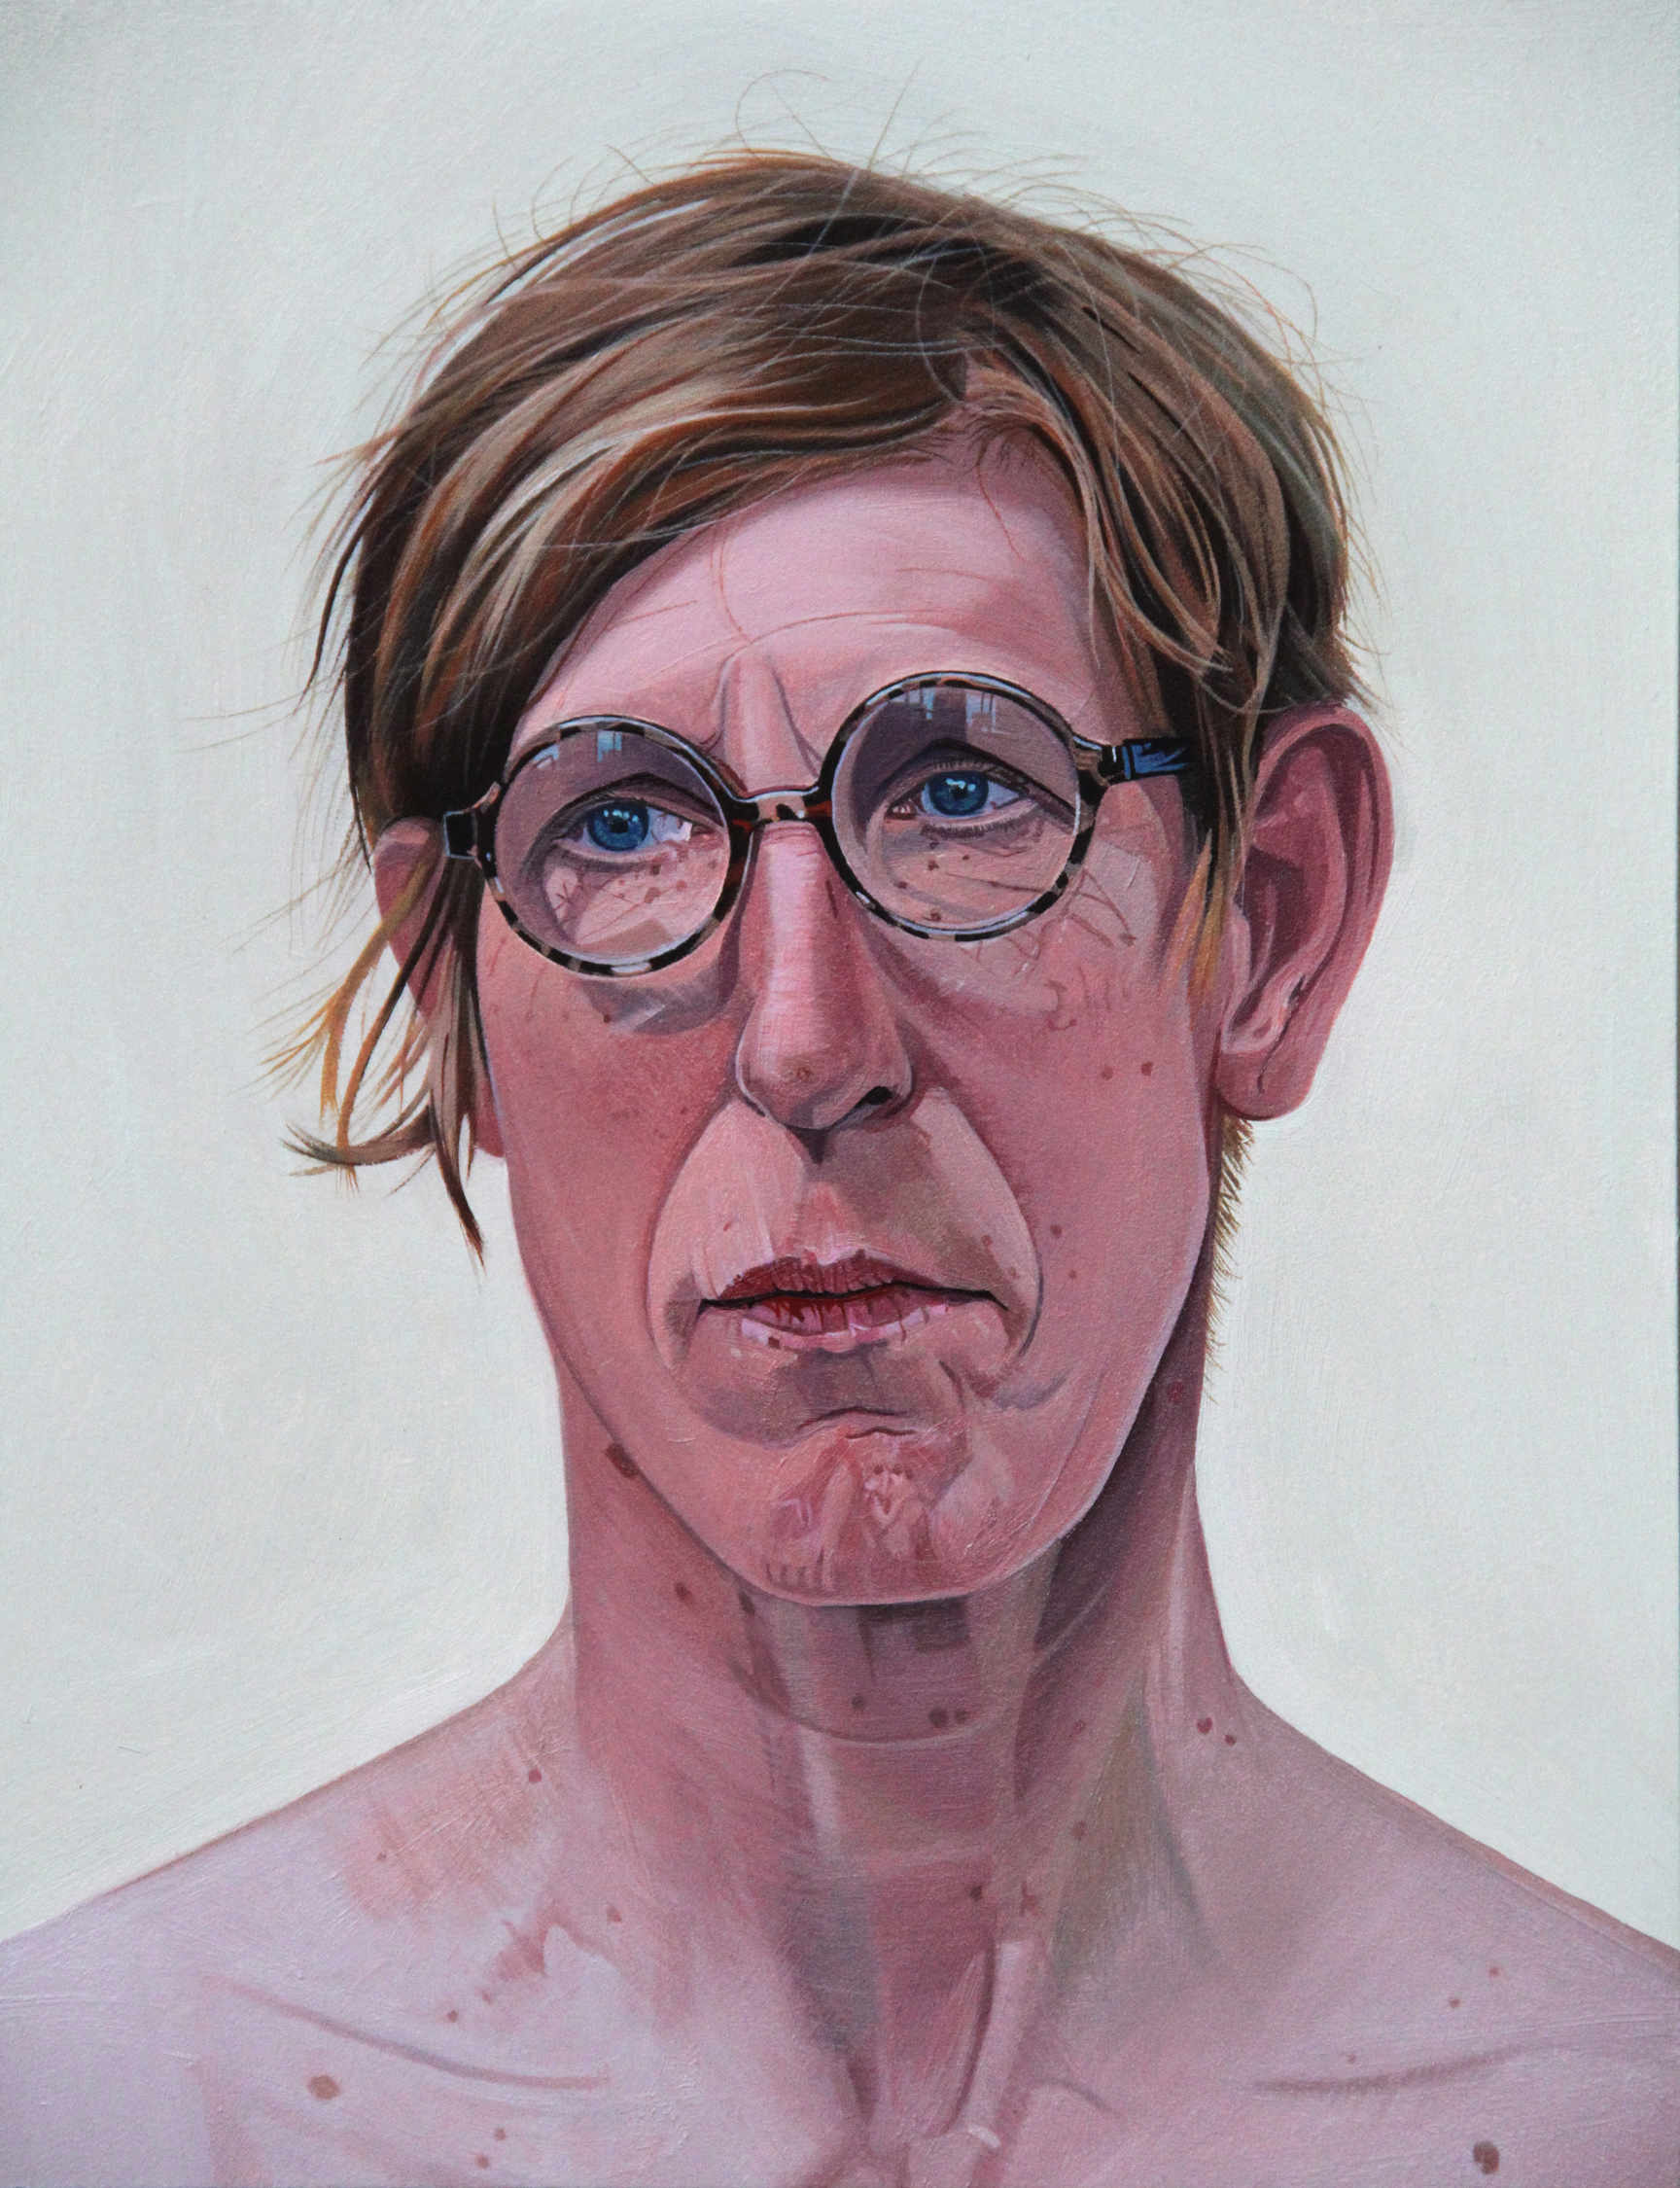 Tony Noble, Suki the life model., Oil on panel., 30 x 24 x 2,  http://www.tonynoble-artist.com